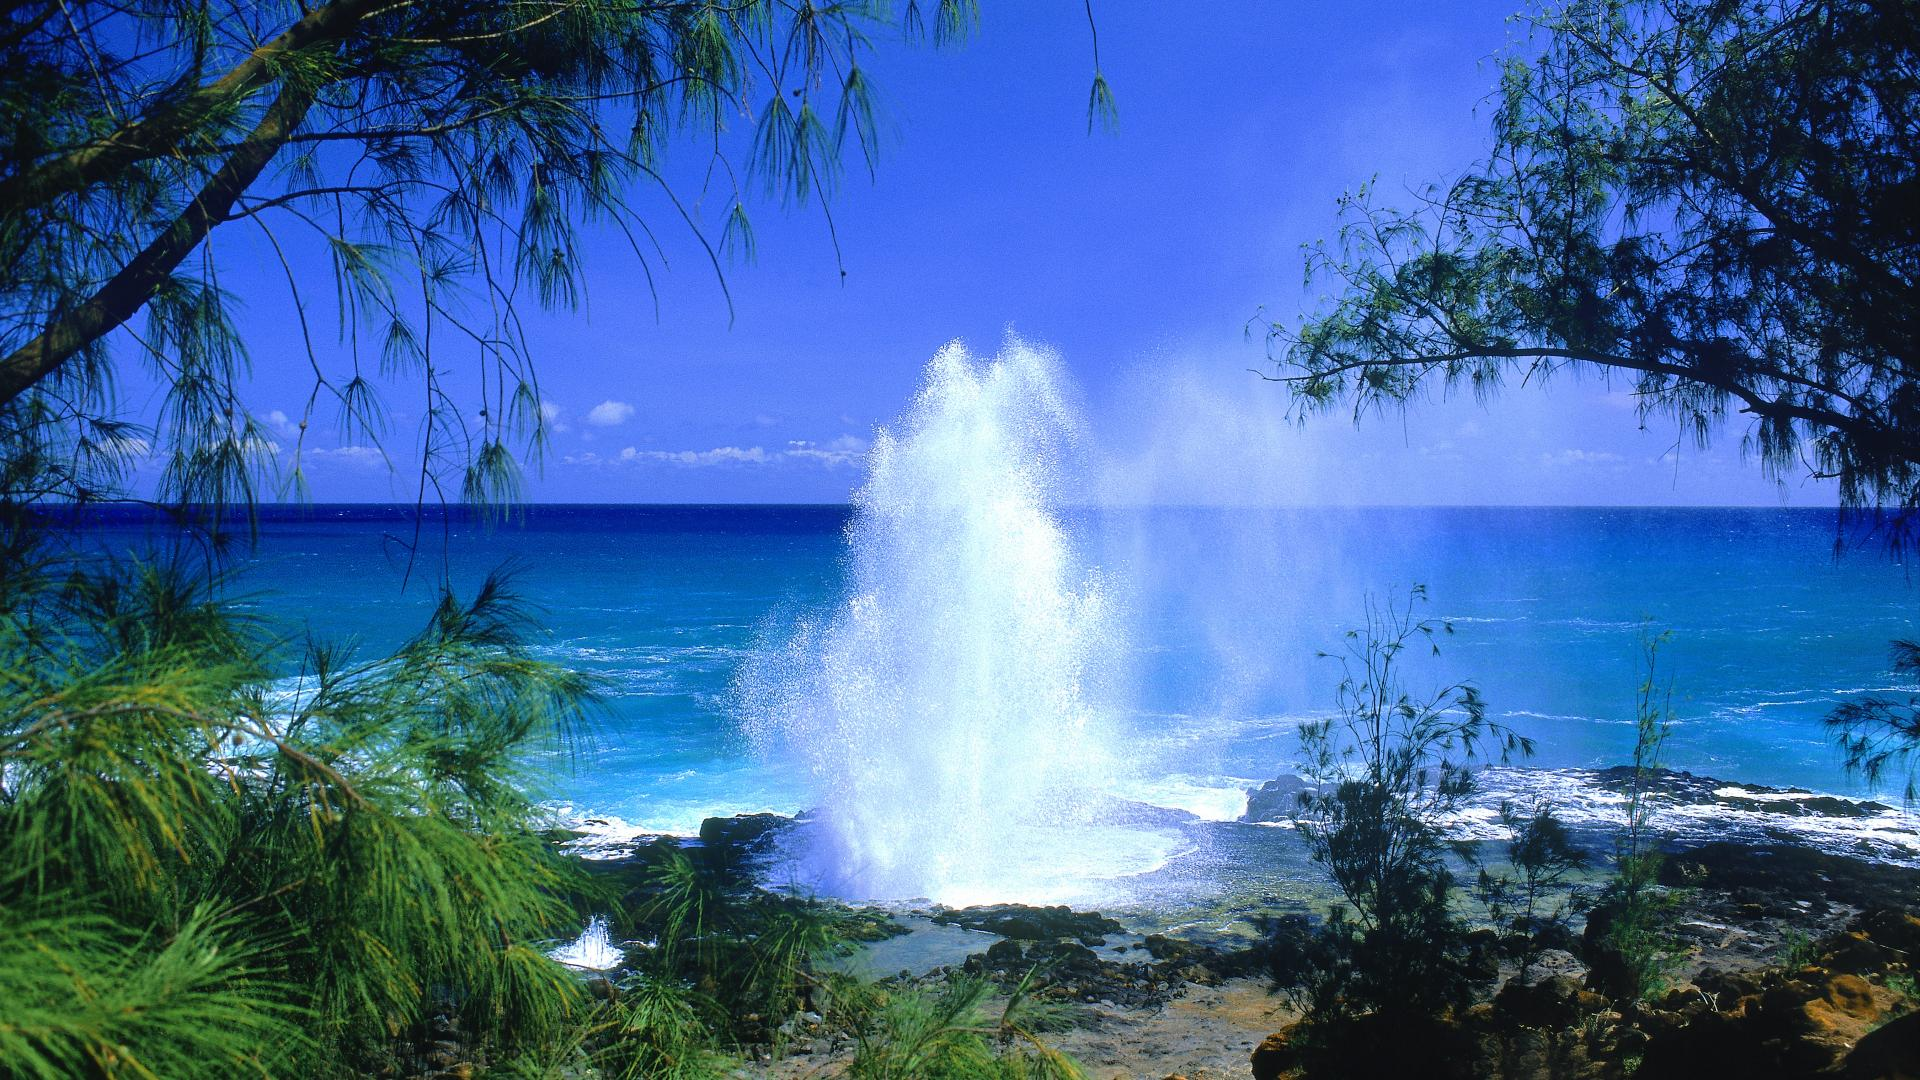 backgrounds desktop wallpaper hawaii spouting beach kauai 1920x1080